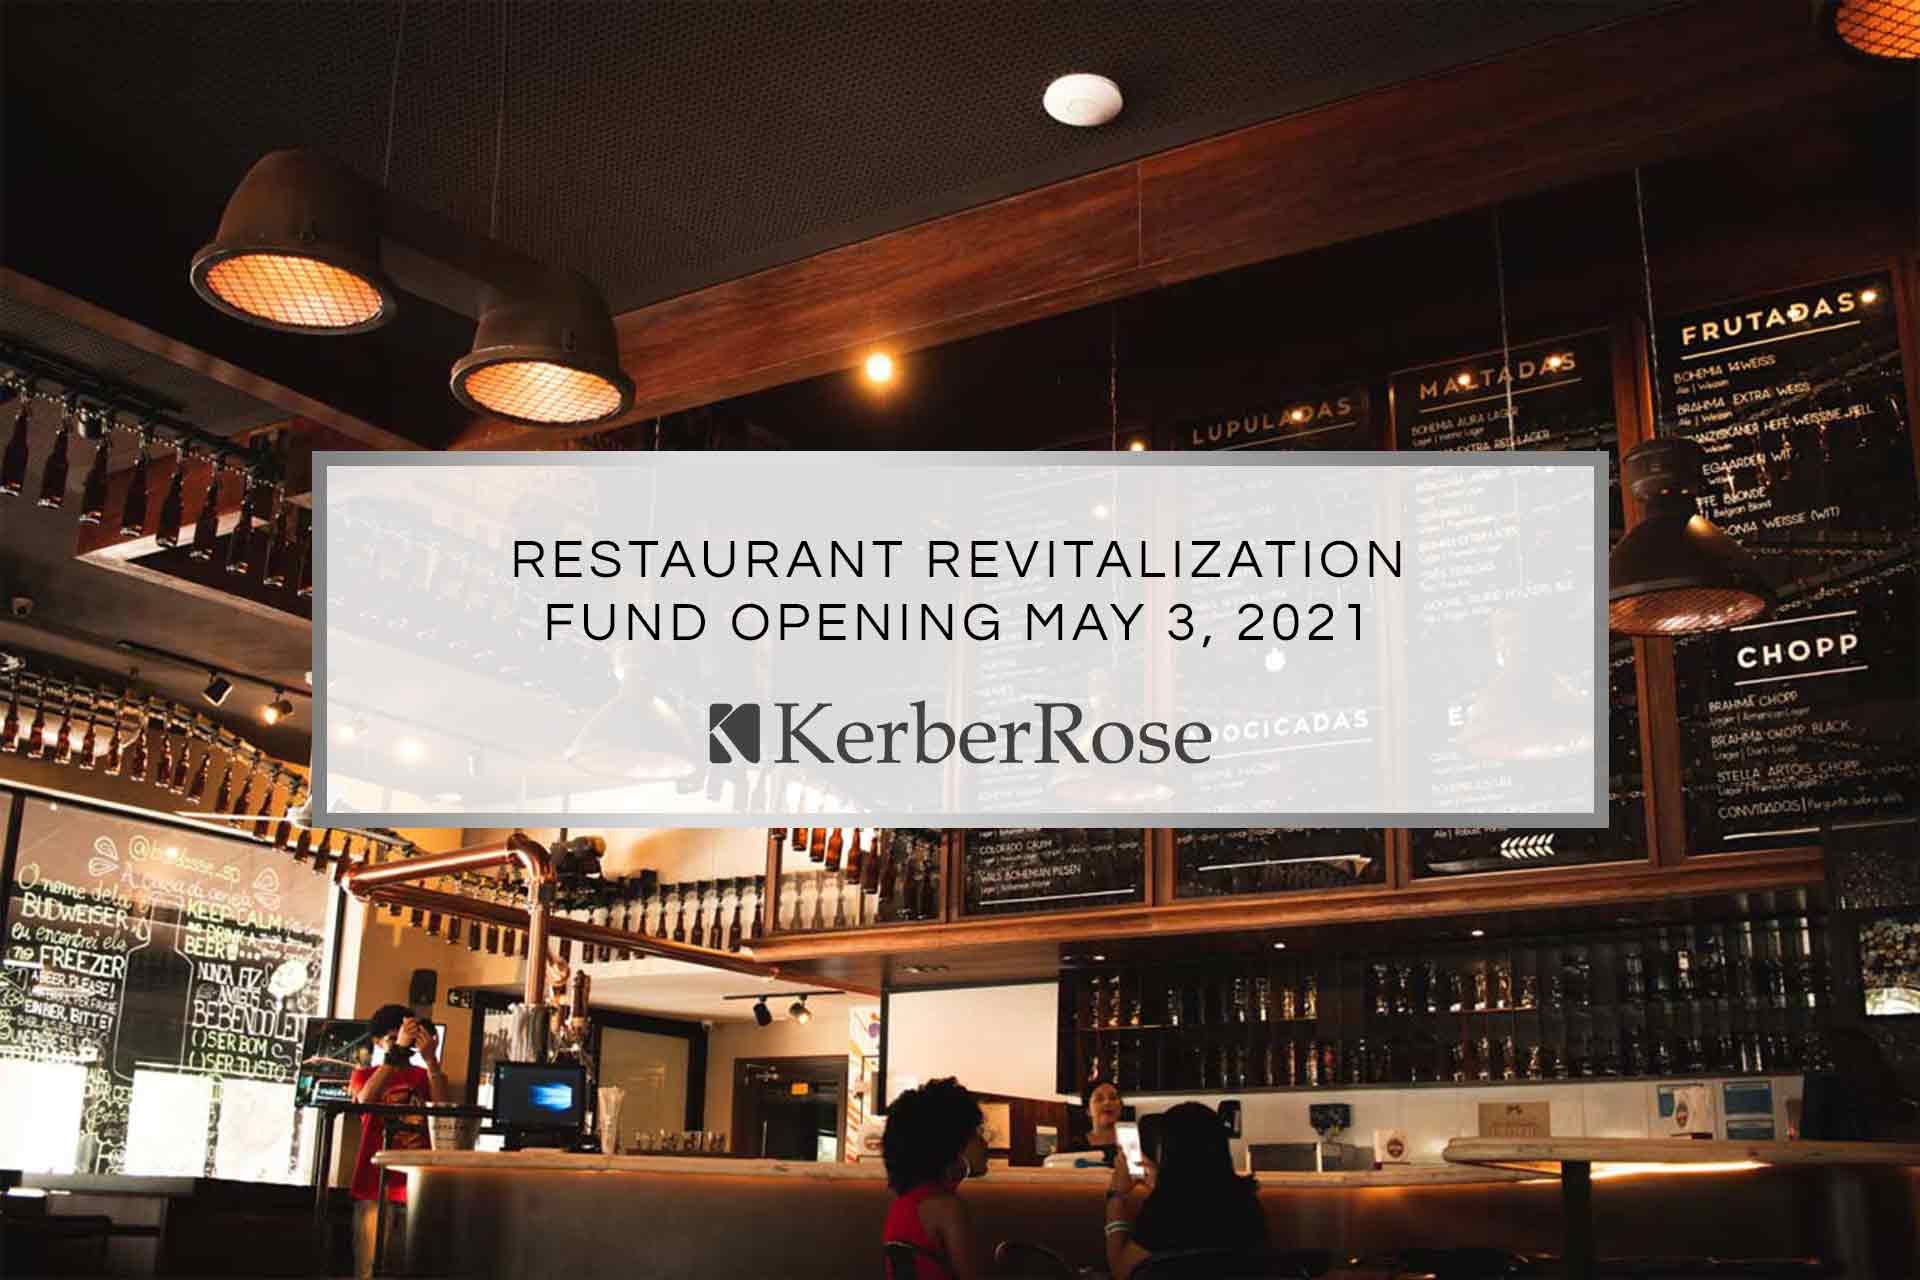 Restaurant Revitalization Fund Opening May 3, 2021